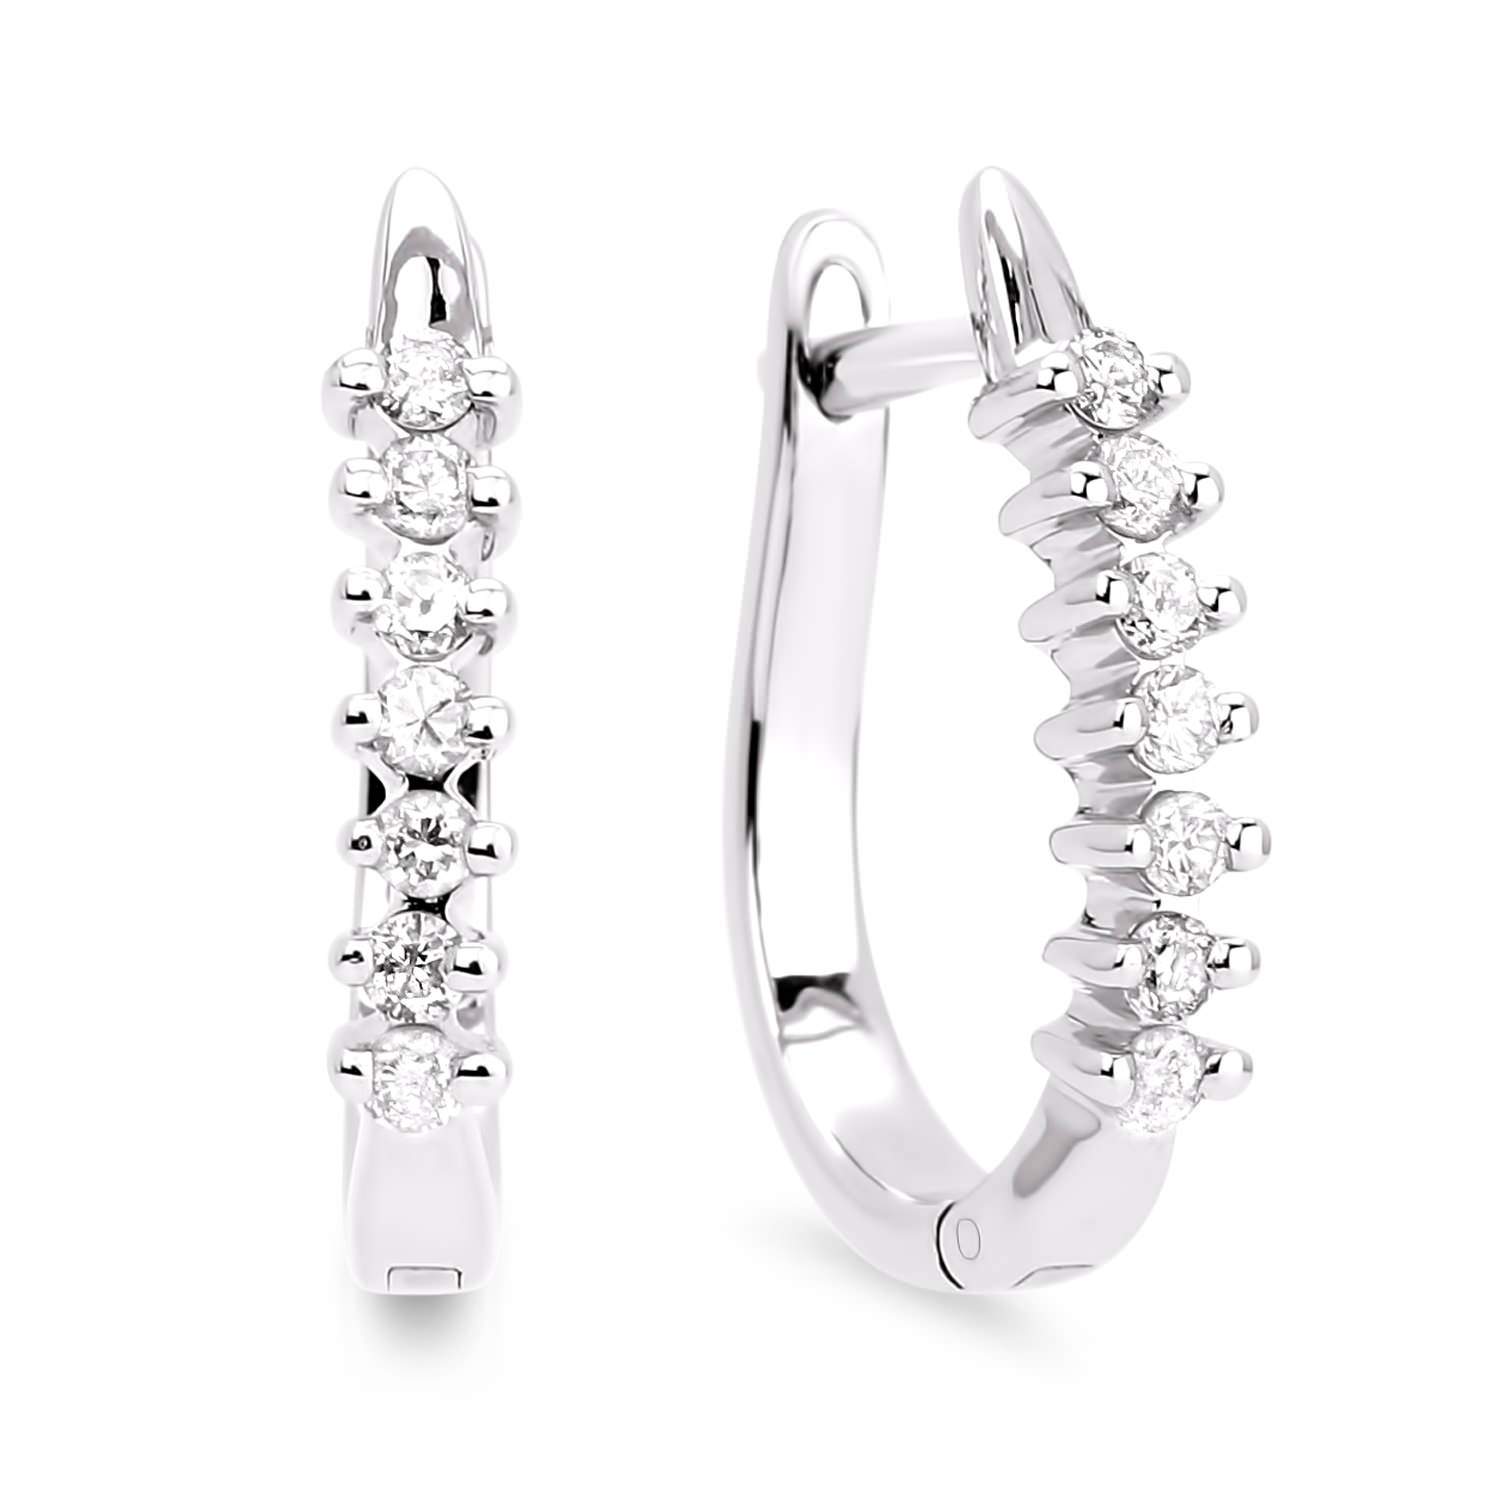 Diamond Hoop Earrings SGE107 (Earrings)